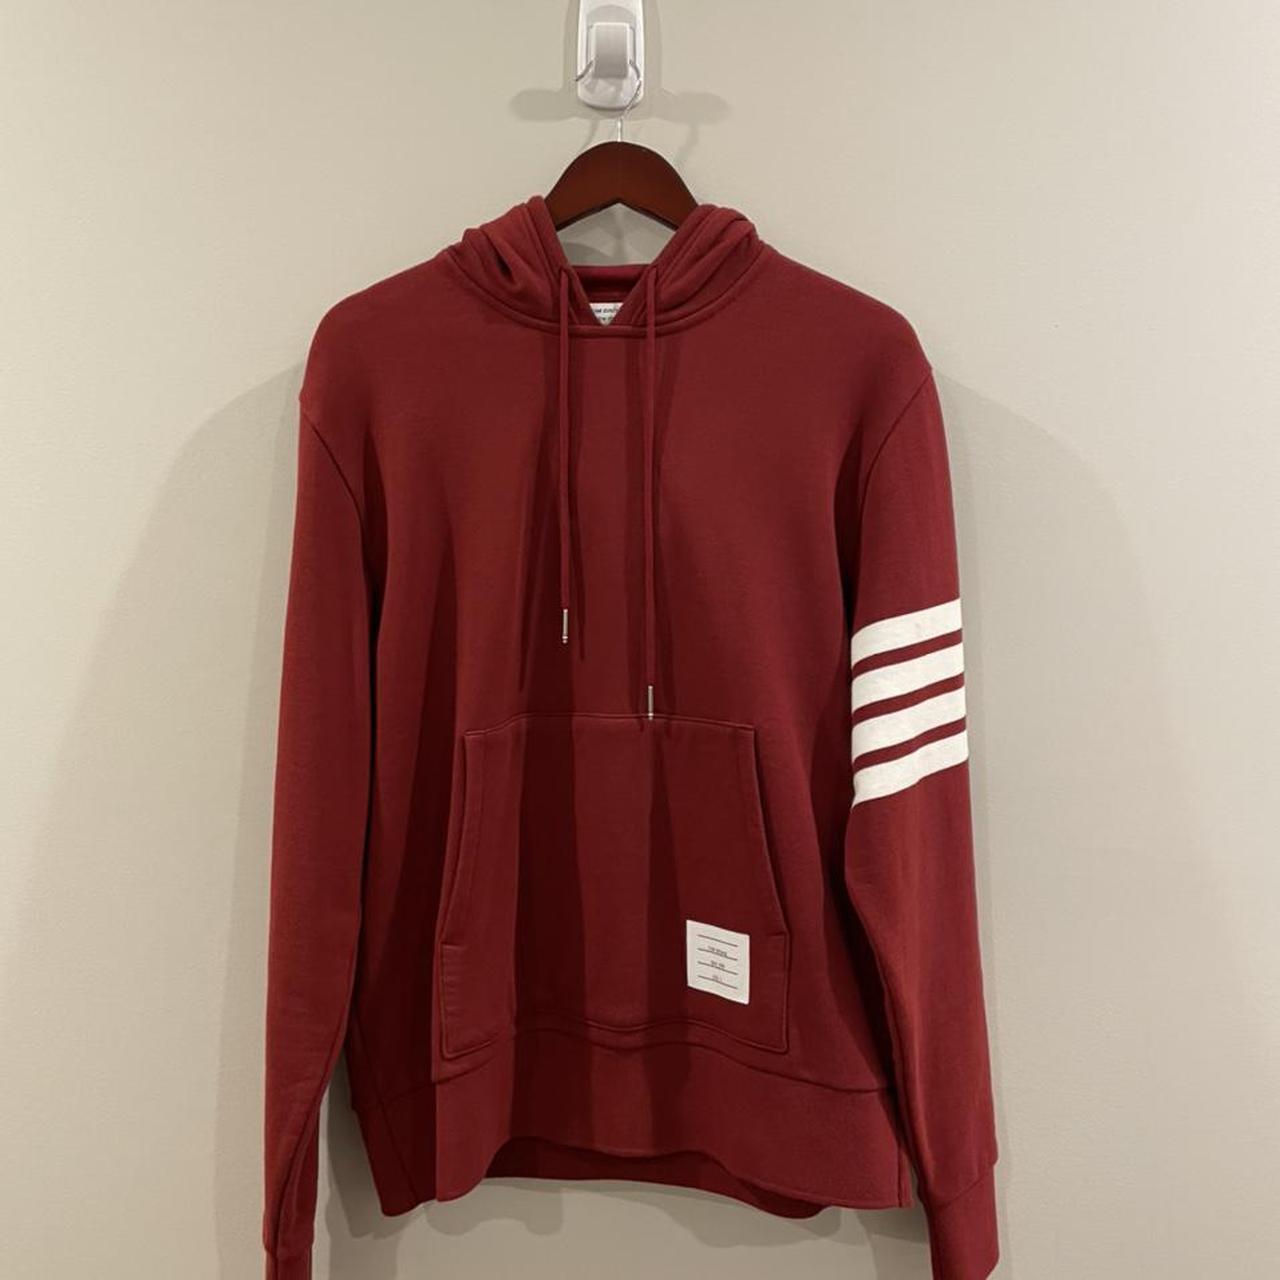 Product Image 1 - Thom Browne  Burgundy -L/ Size 3